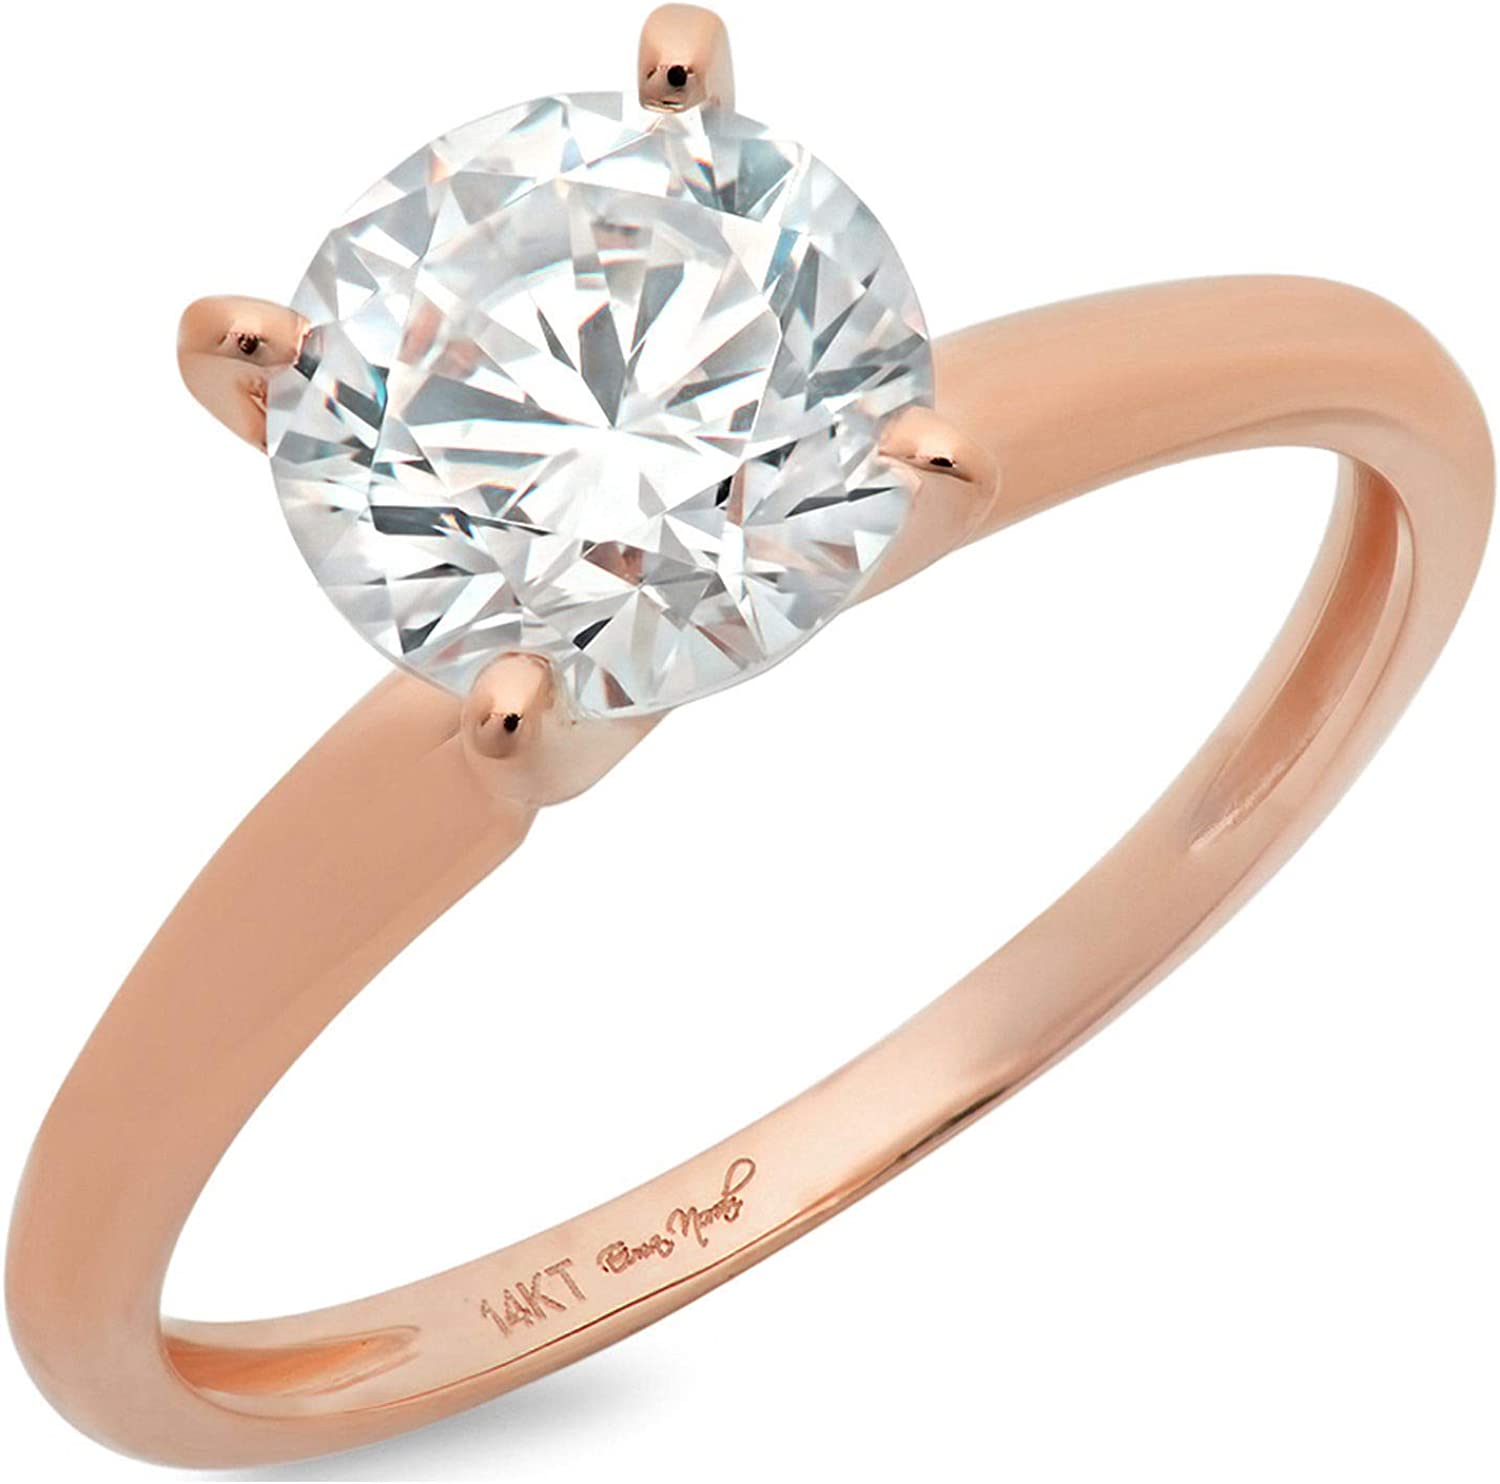 2.45ct Brilliant Round Cut Solitaire Stunning Genuine Moissanite Ideal D 4-Prong Designer Anniversary Bridal Wedding Ring in Solid 14k rose Gold for Women